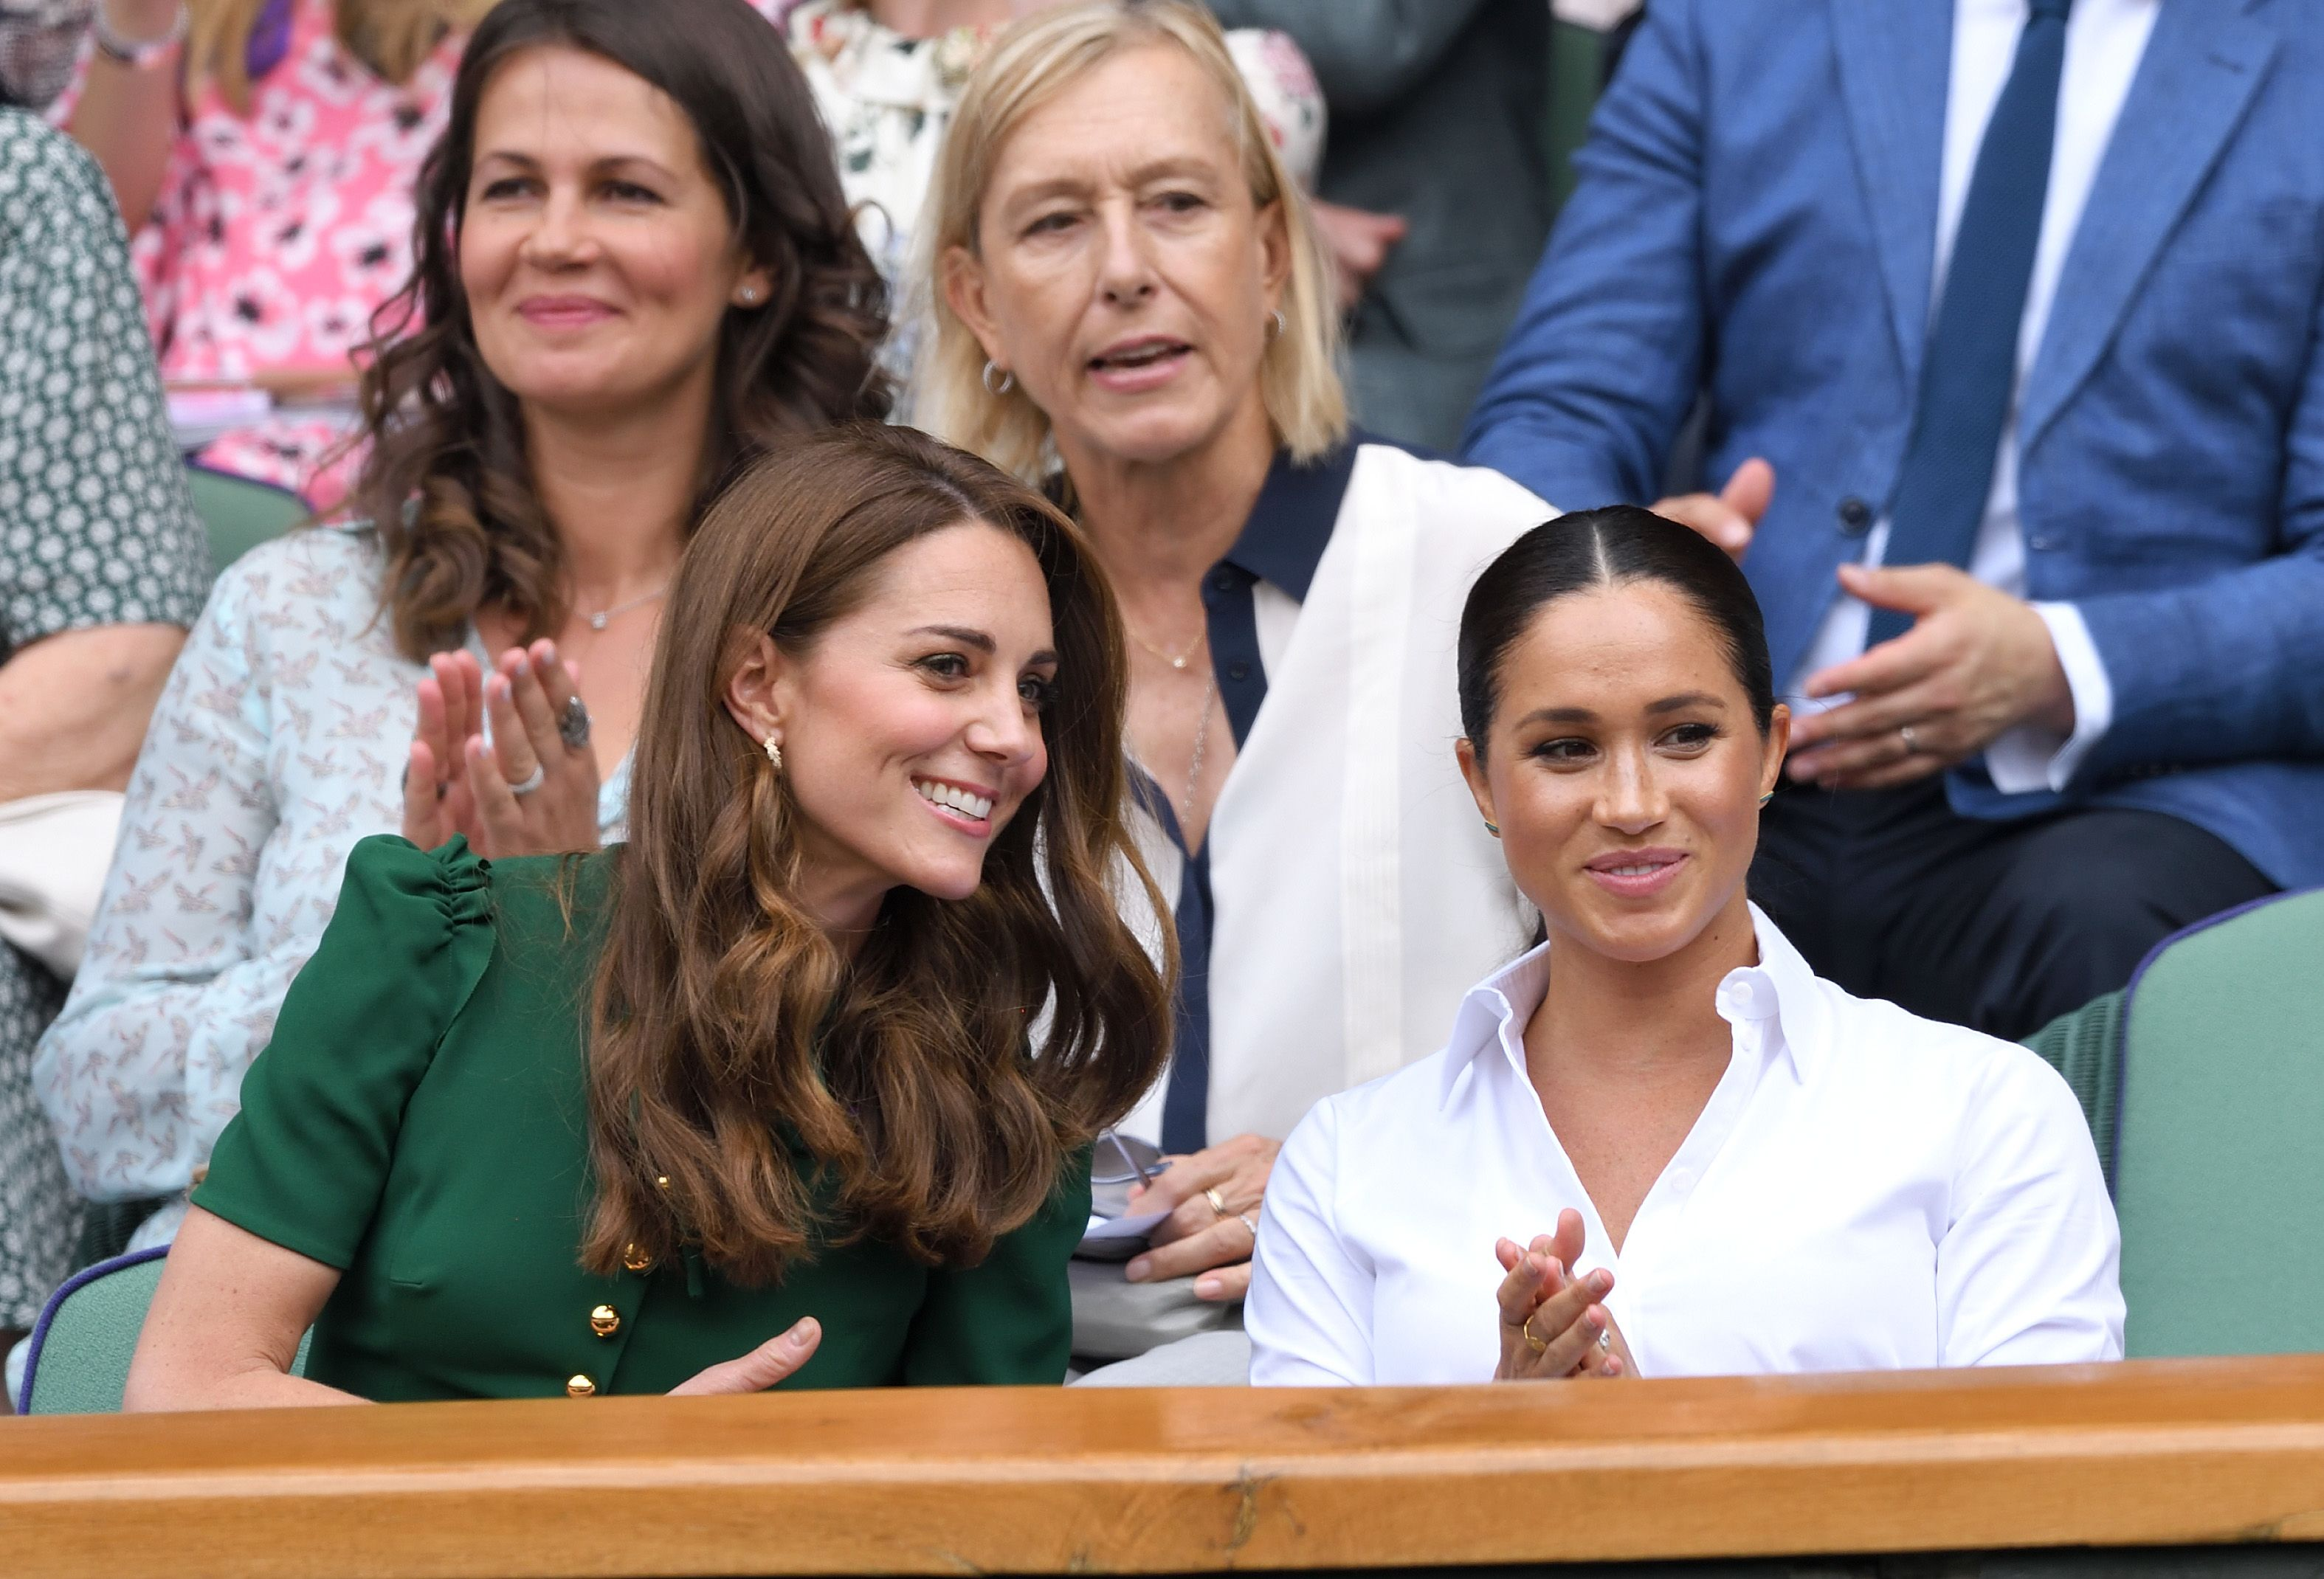 Kate Middleton Has a Sweet Connection to Meghan Markle's Fashion Line for Smart Works